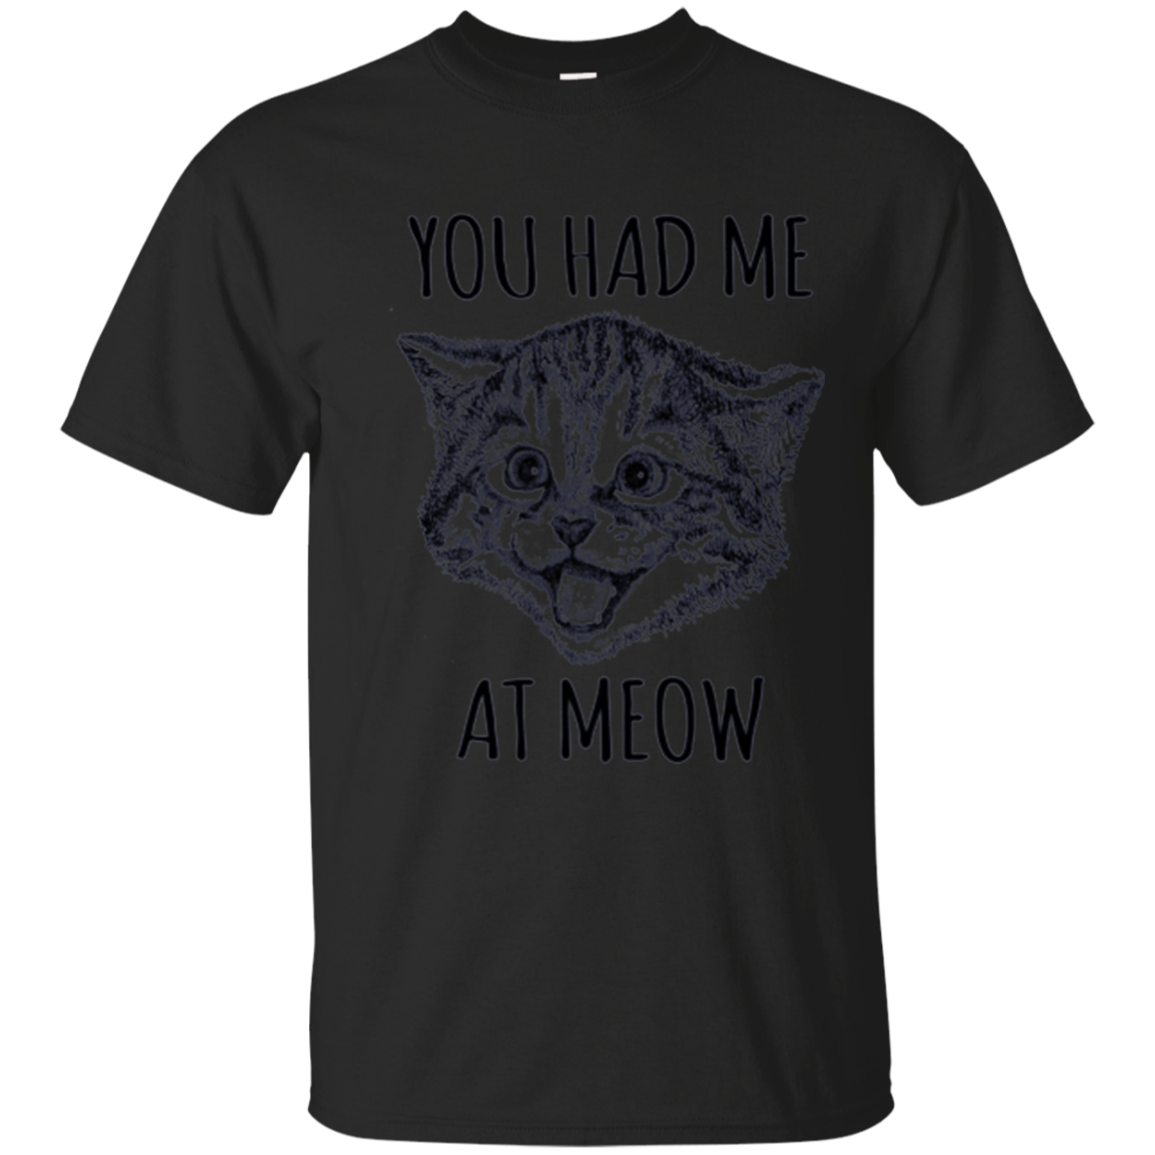 You Had Me At Meow Shirt Funny Cat Lovers Tee Top